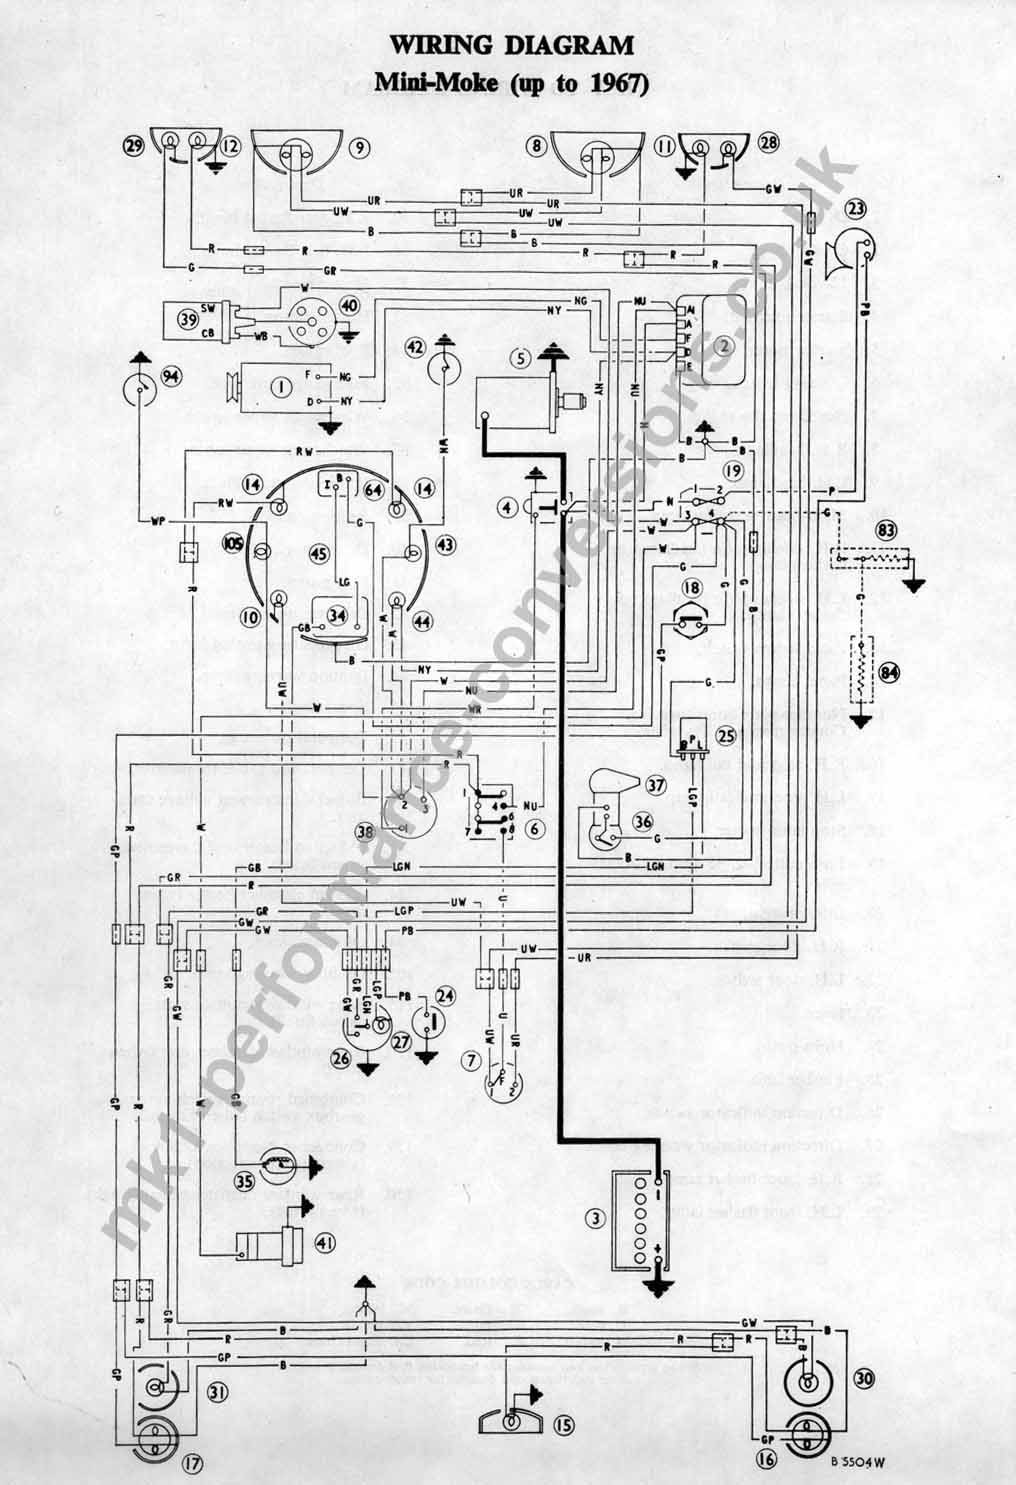 technical electrical wiring diagram mk1 moke to 1967